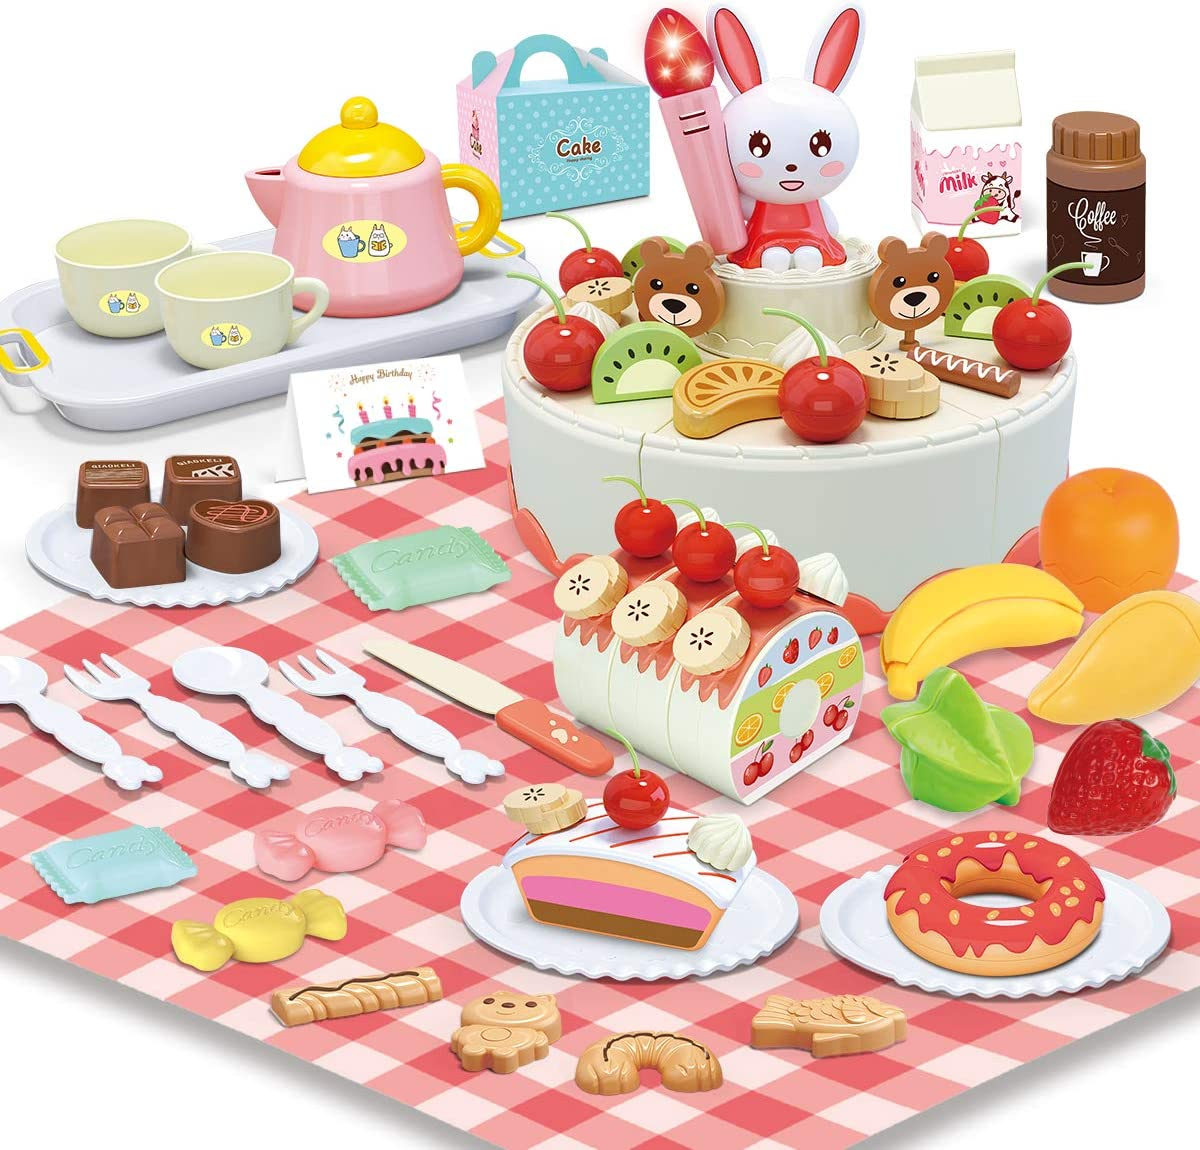 REMOKING DIY Cake Toys, Educational Food Pretend Play Toy with Light and Music, Funny Cutting Toys Set 88 Pcs with Outdoors Table Picnic Cloth, Great Gifts for Kids 3 Years and up